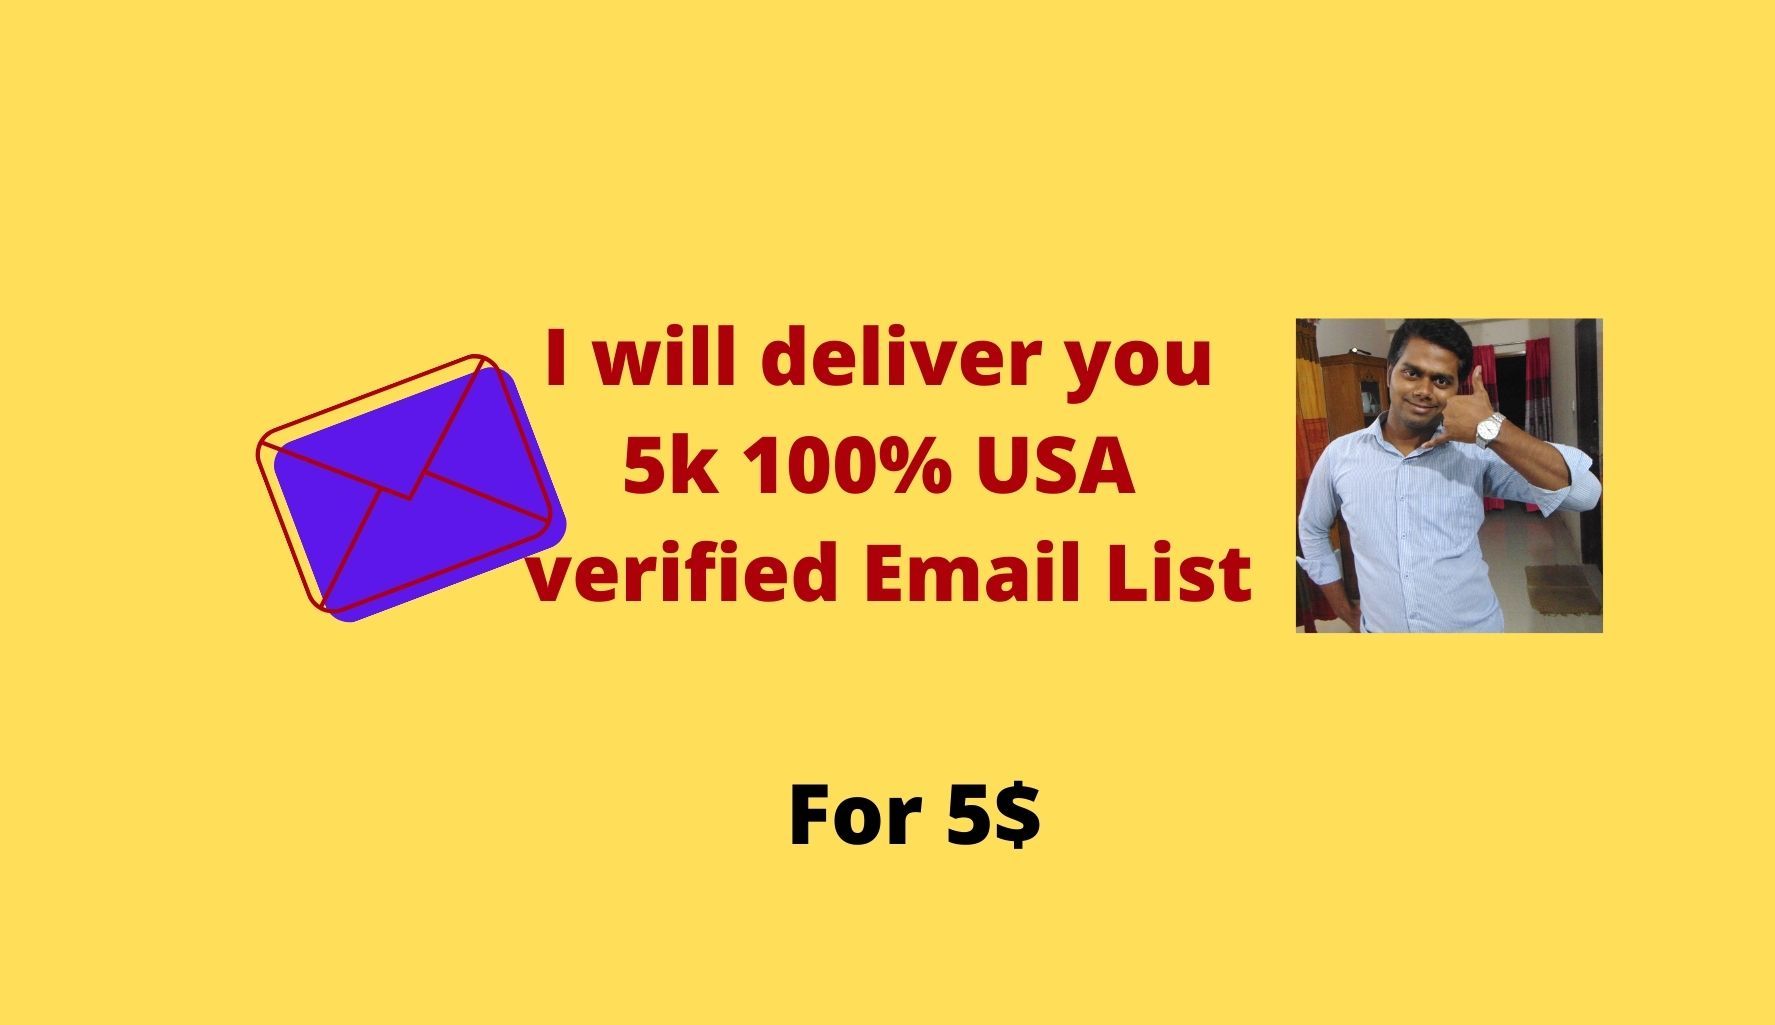 I will deliver you 5K 100% USA verified email list